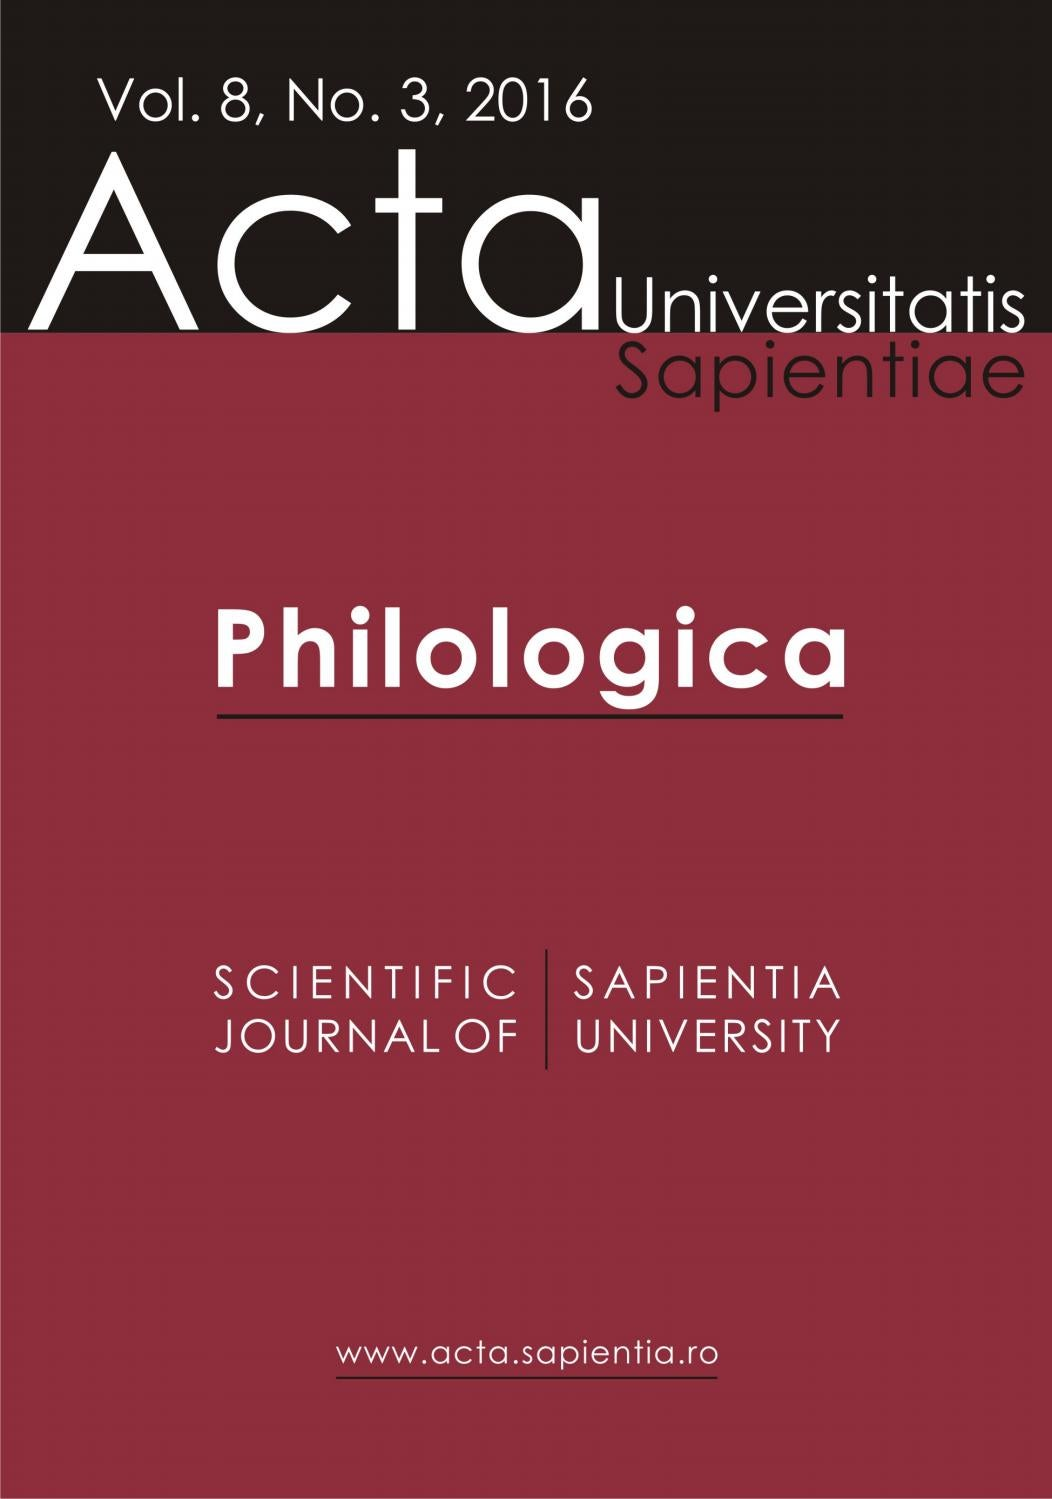 Philologica Vol 8 No 3 2016 By Acta Universitatis